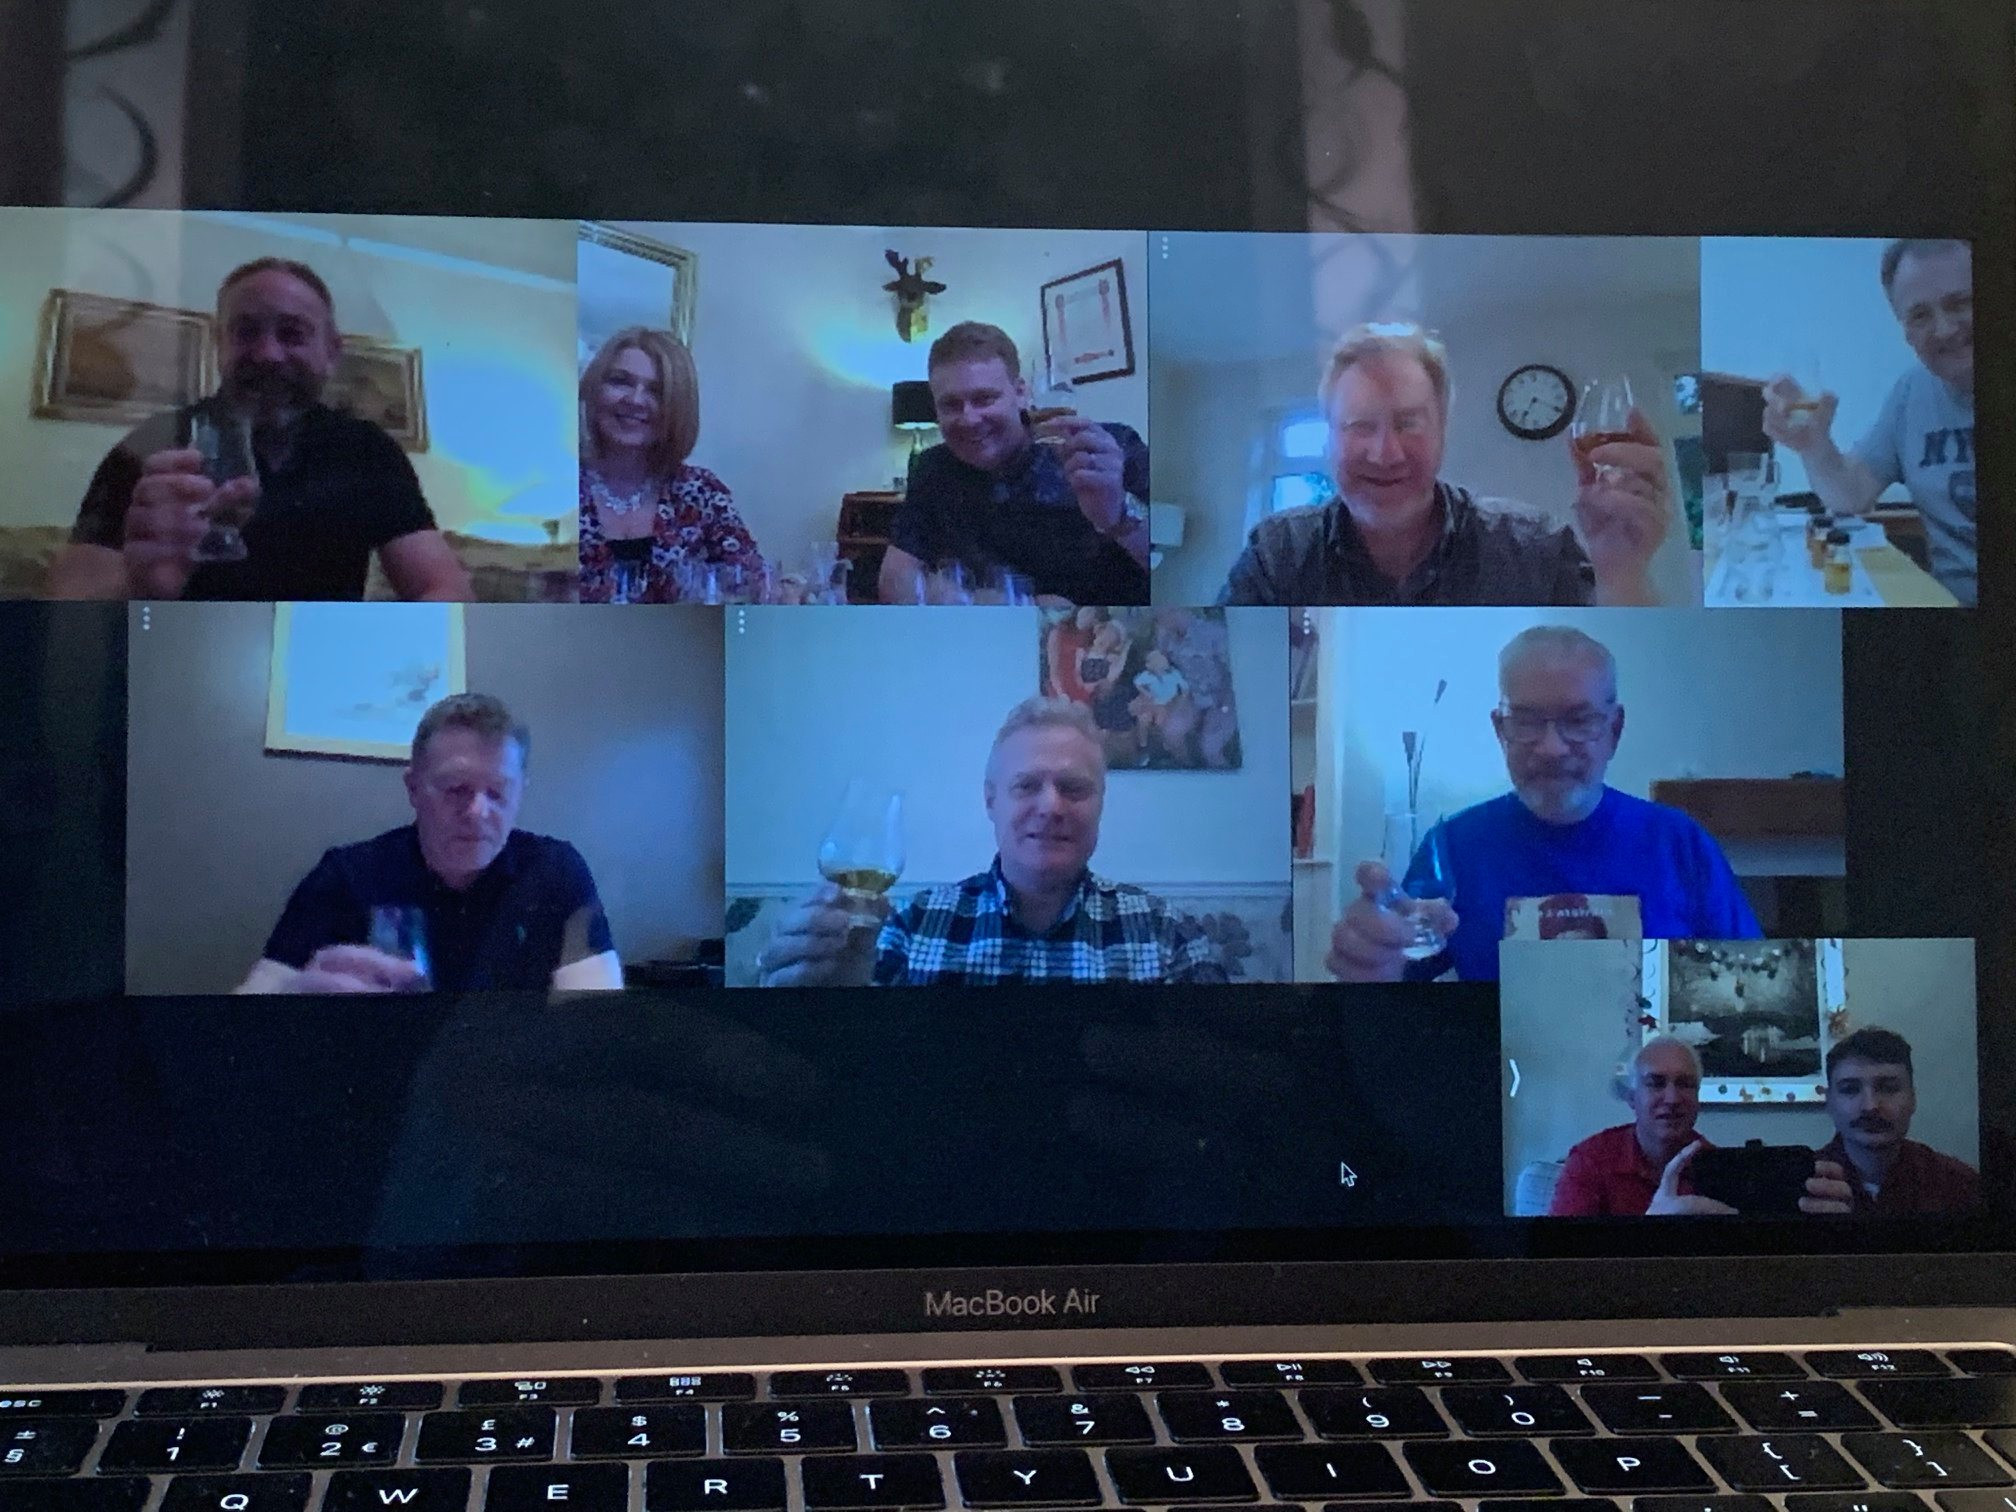 Online Whisky Tasting With Friends